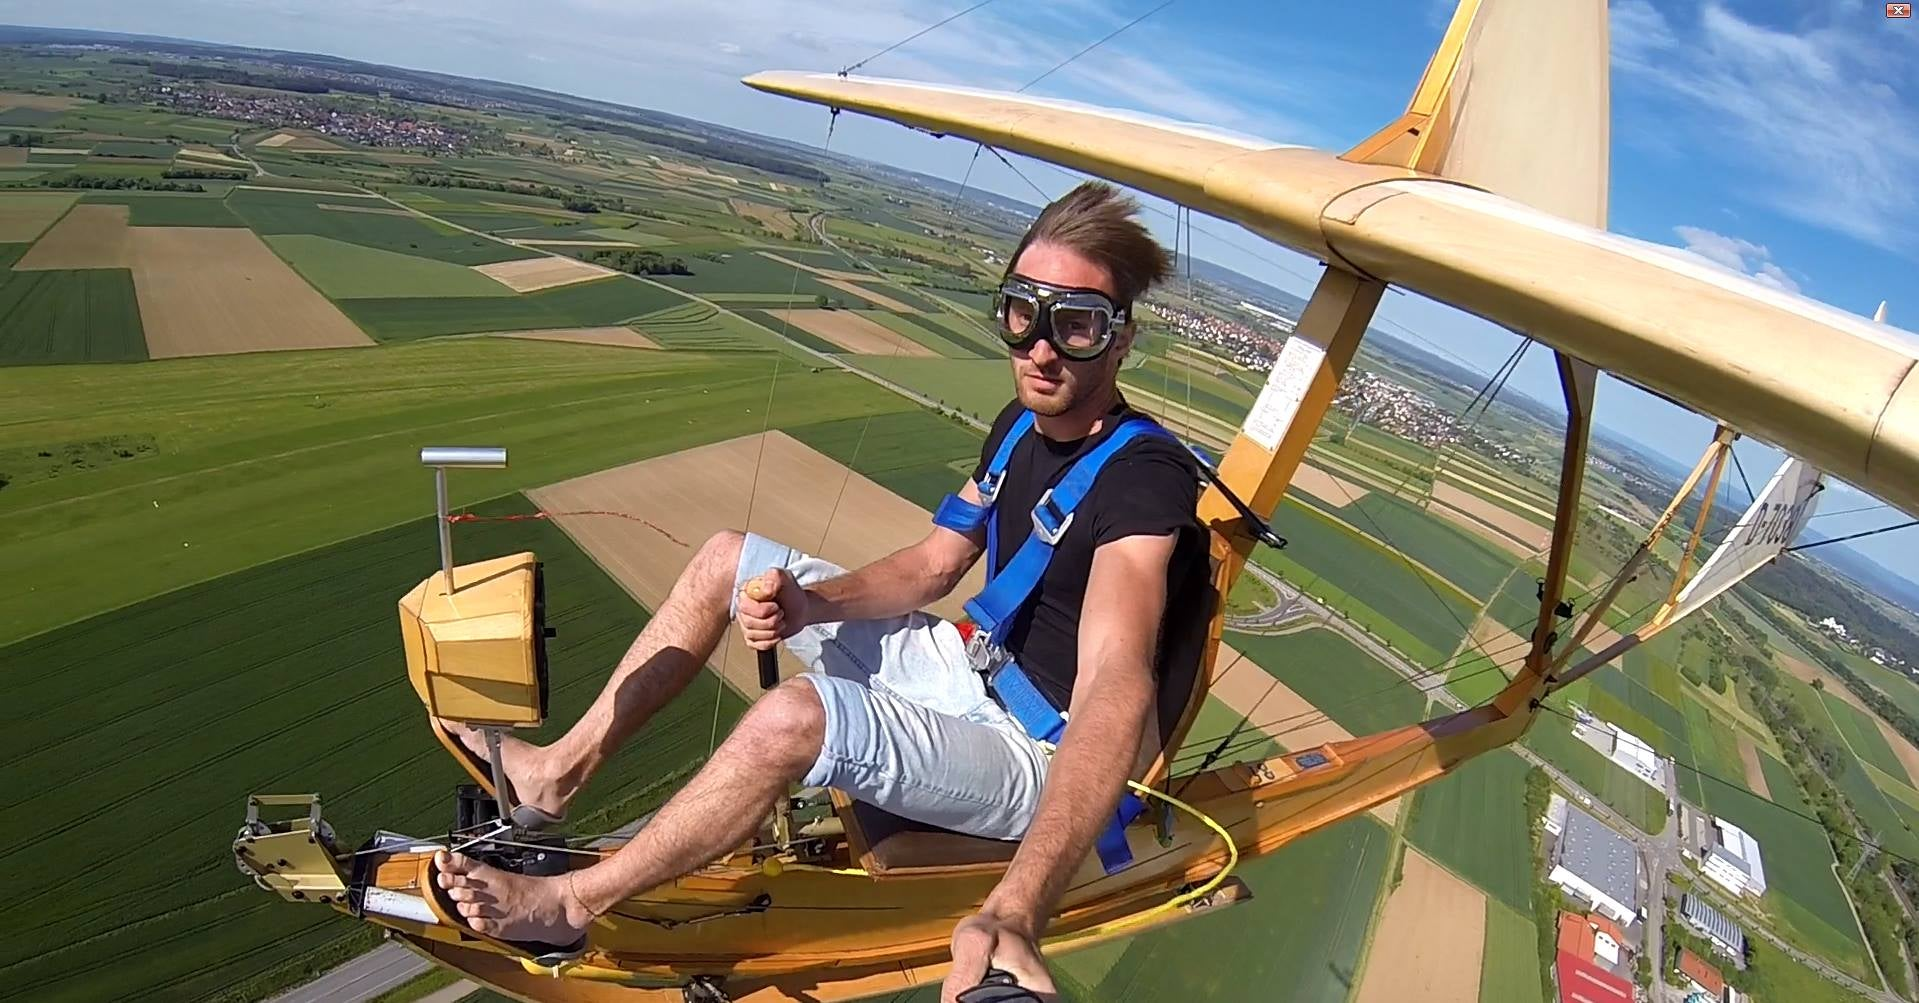 Flying this Nazi glider from 1938 seems incredibly fun